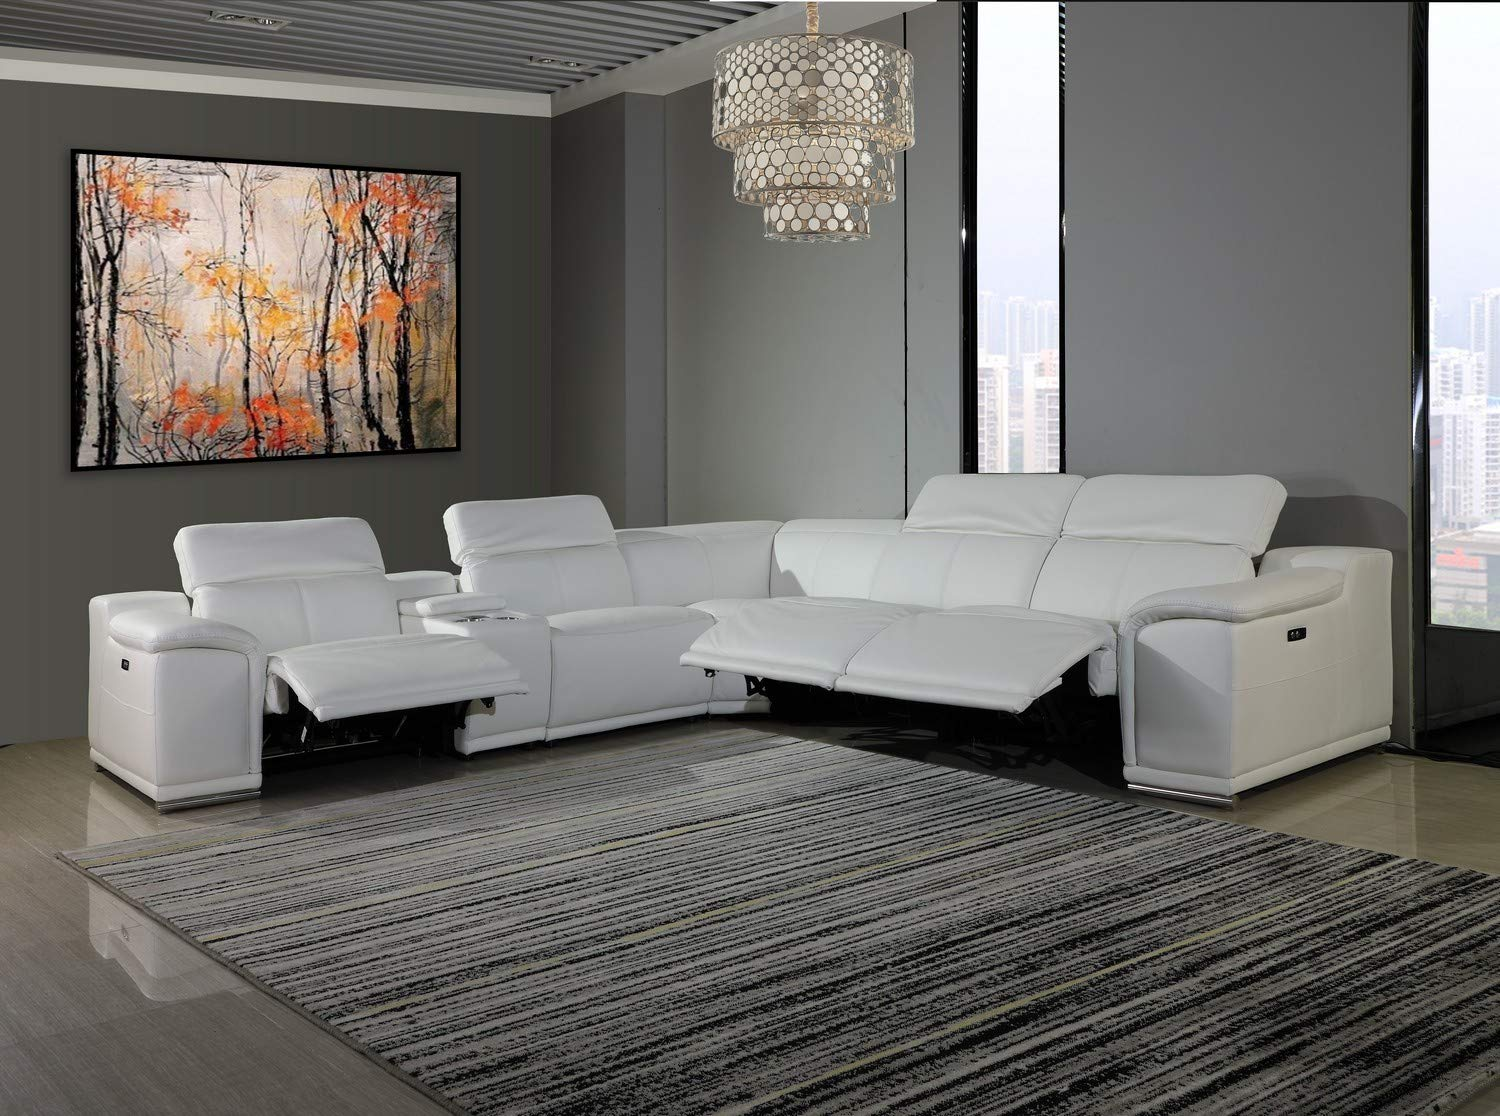 Blackjack Furniture Venice Modern Living Room Power Reclining Sectional Set with Console, 6 Piece, White by Blackjack Furniture